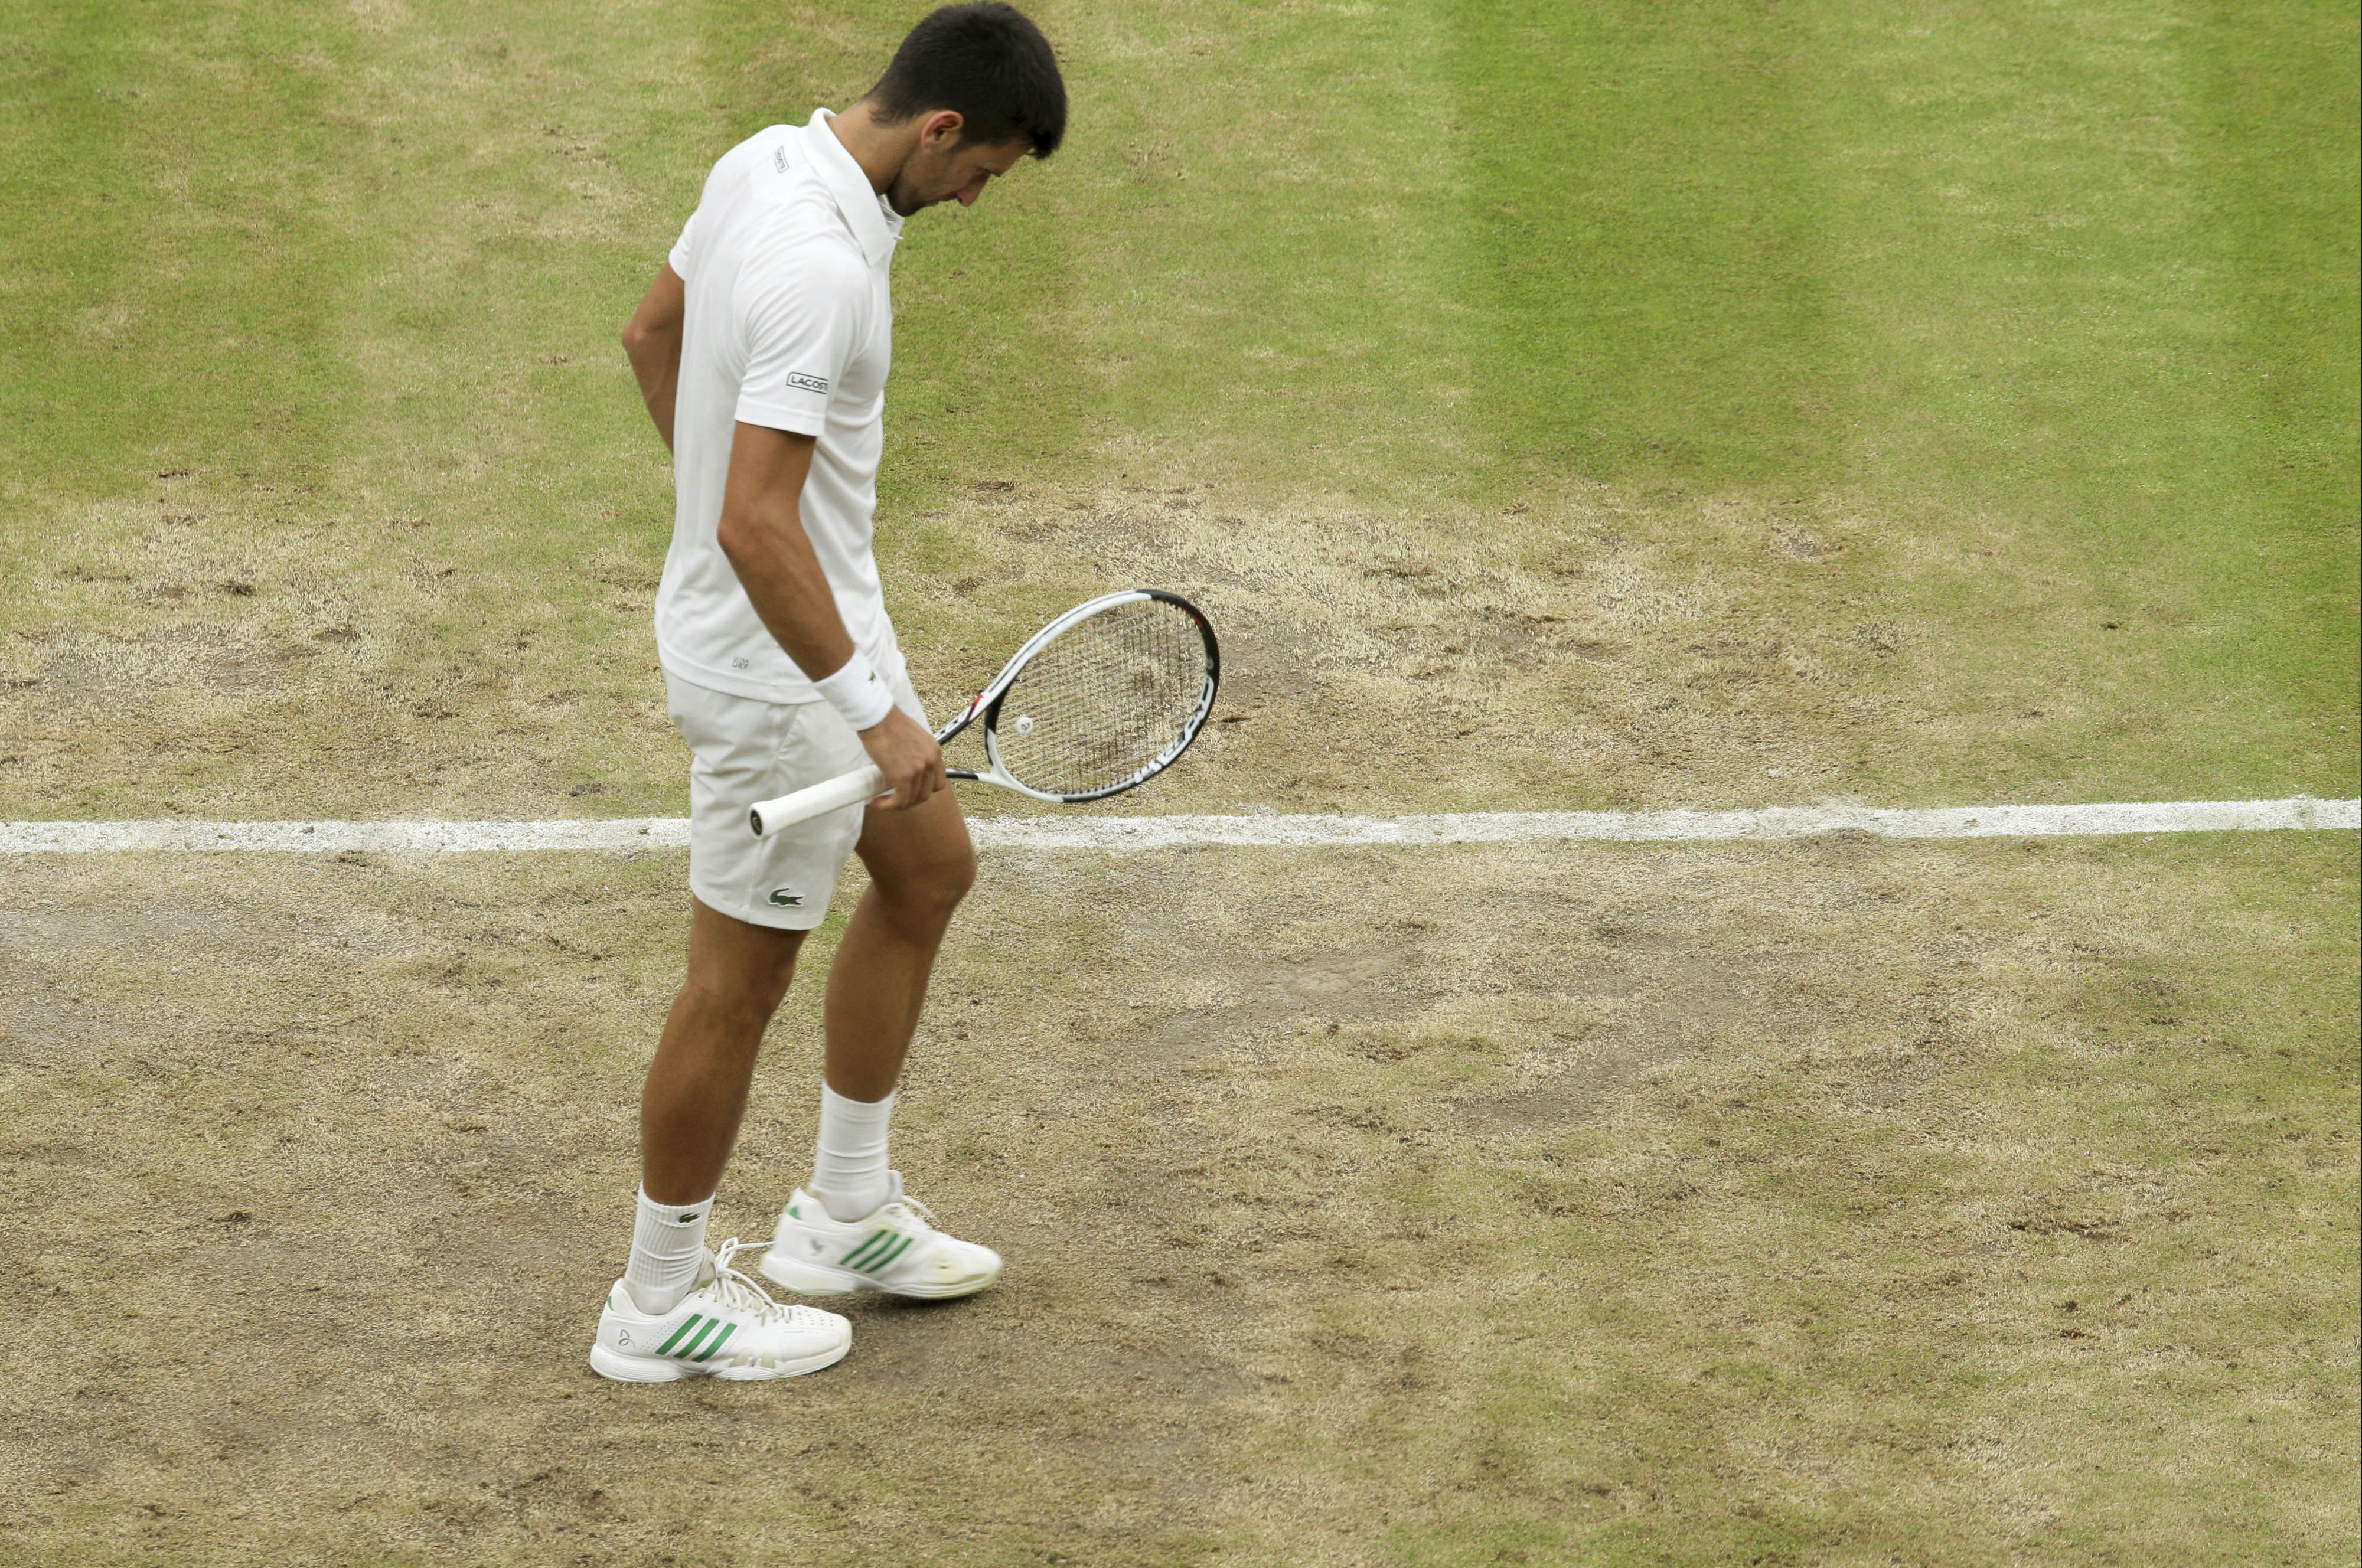 Serbia's Novak Djokovic looks down on the baseline as he plays against Adrian Mannarino of France during their Men's Singles Match on day eight at the Wimbledon Tennis Championships in London Tuesday, July 11, 2017. (AP Photo/Tim Ireland)